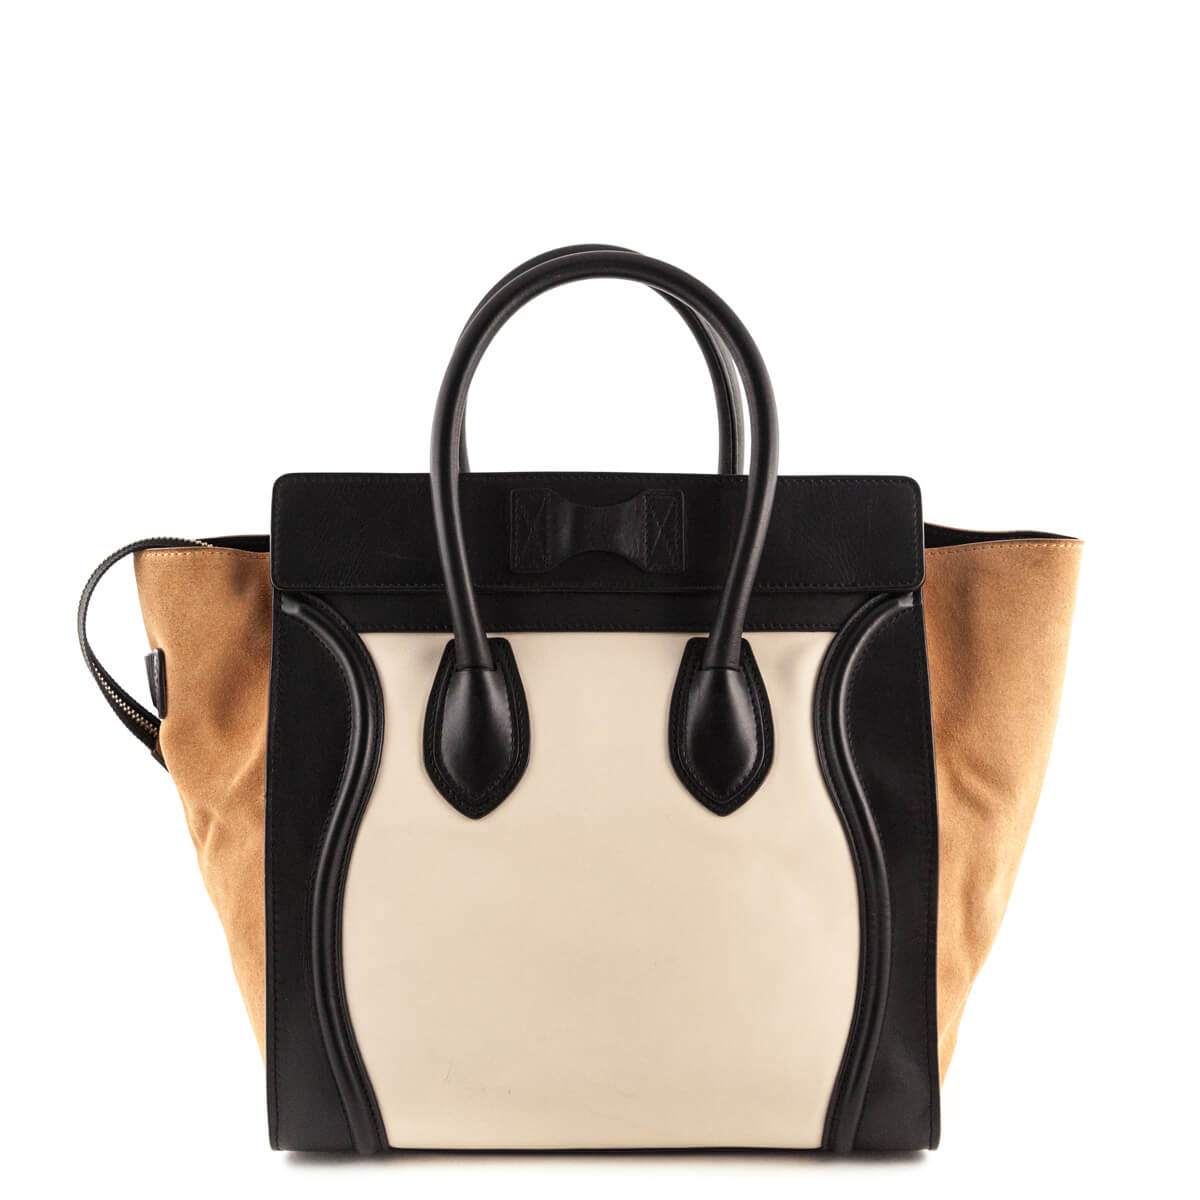 ... Celine Caramel Tricolor Calfskin and Suede Mini Luggage - LOVE that BAG  - Preowned Authentic Designer ... 20ed8fcb8c673